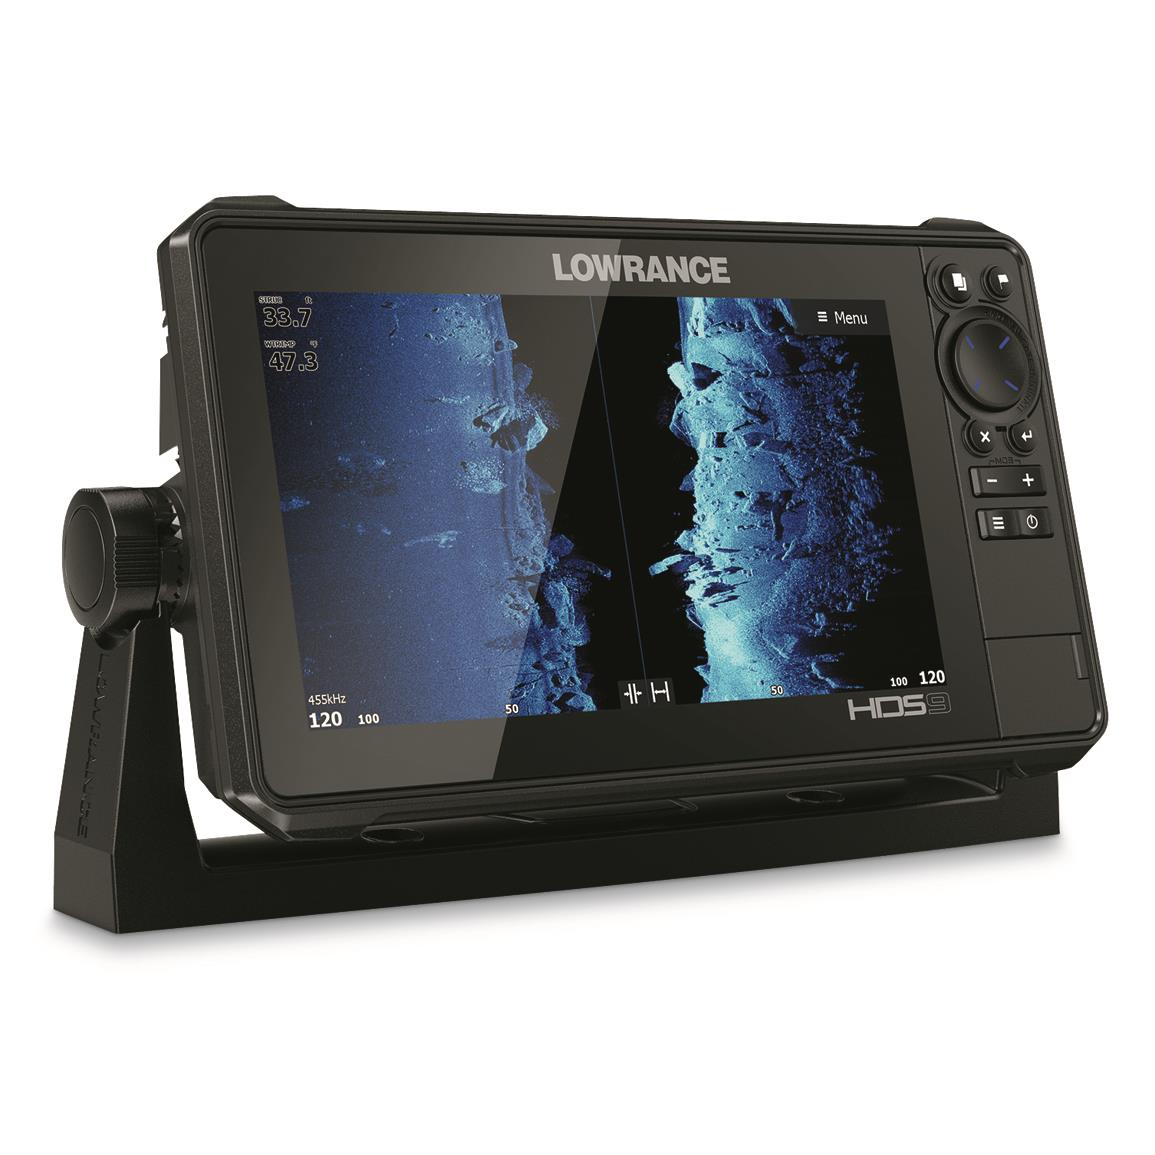 Lowrance HDS LIVE 9 Sonar Fish Finder without Transducer